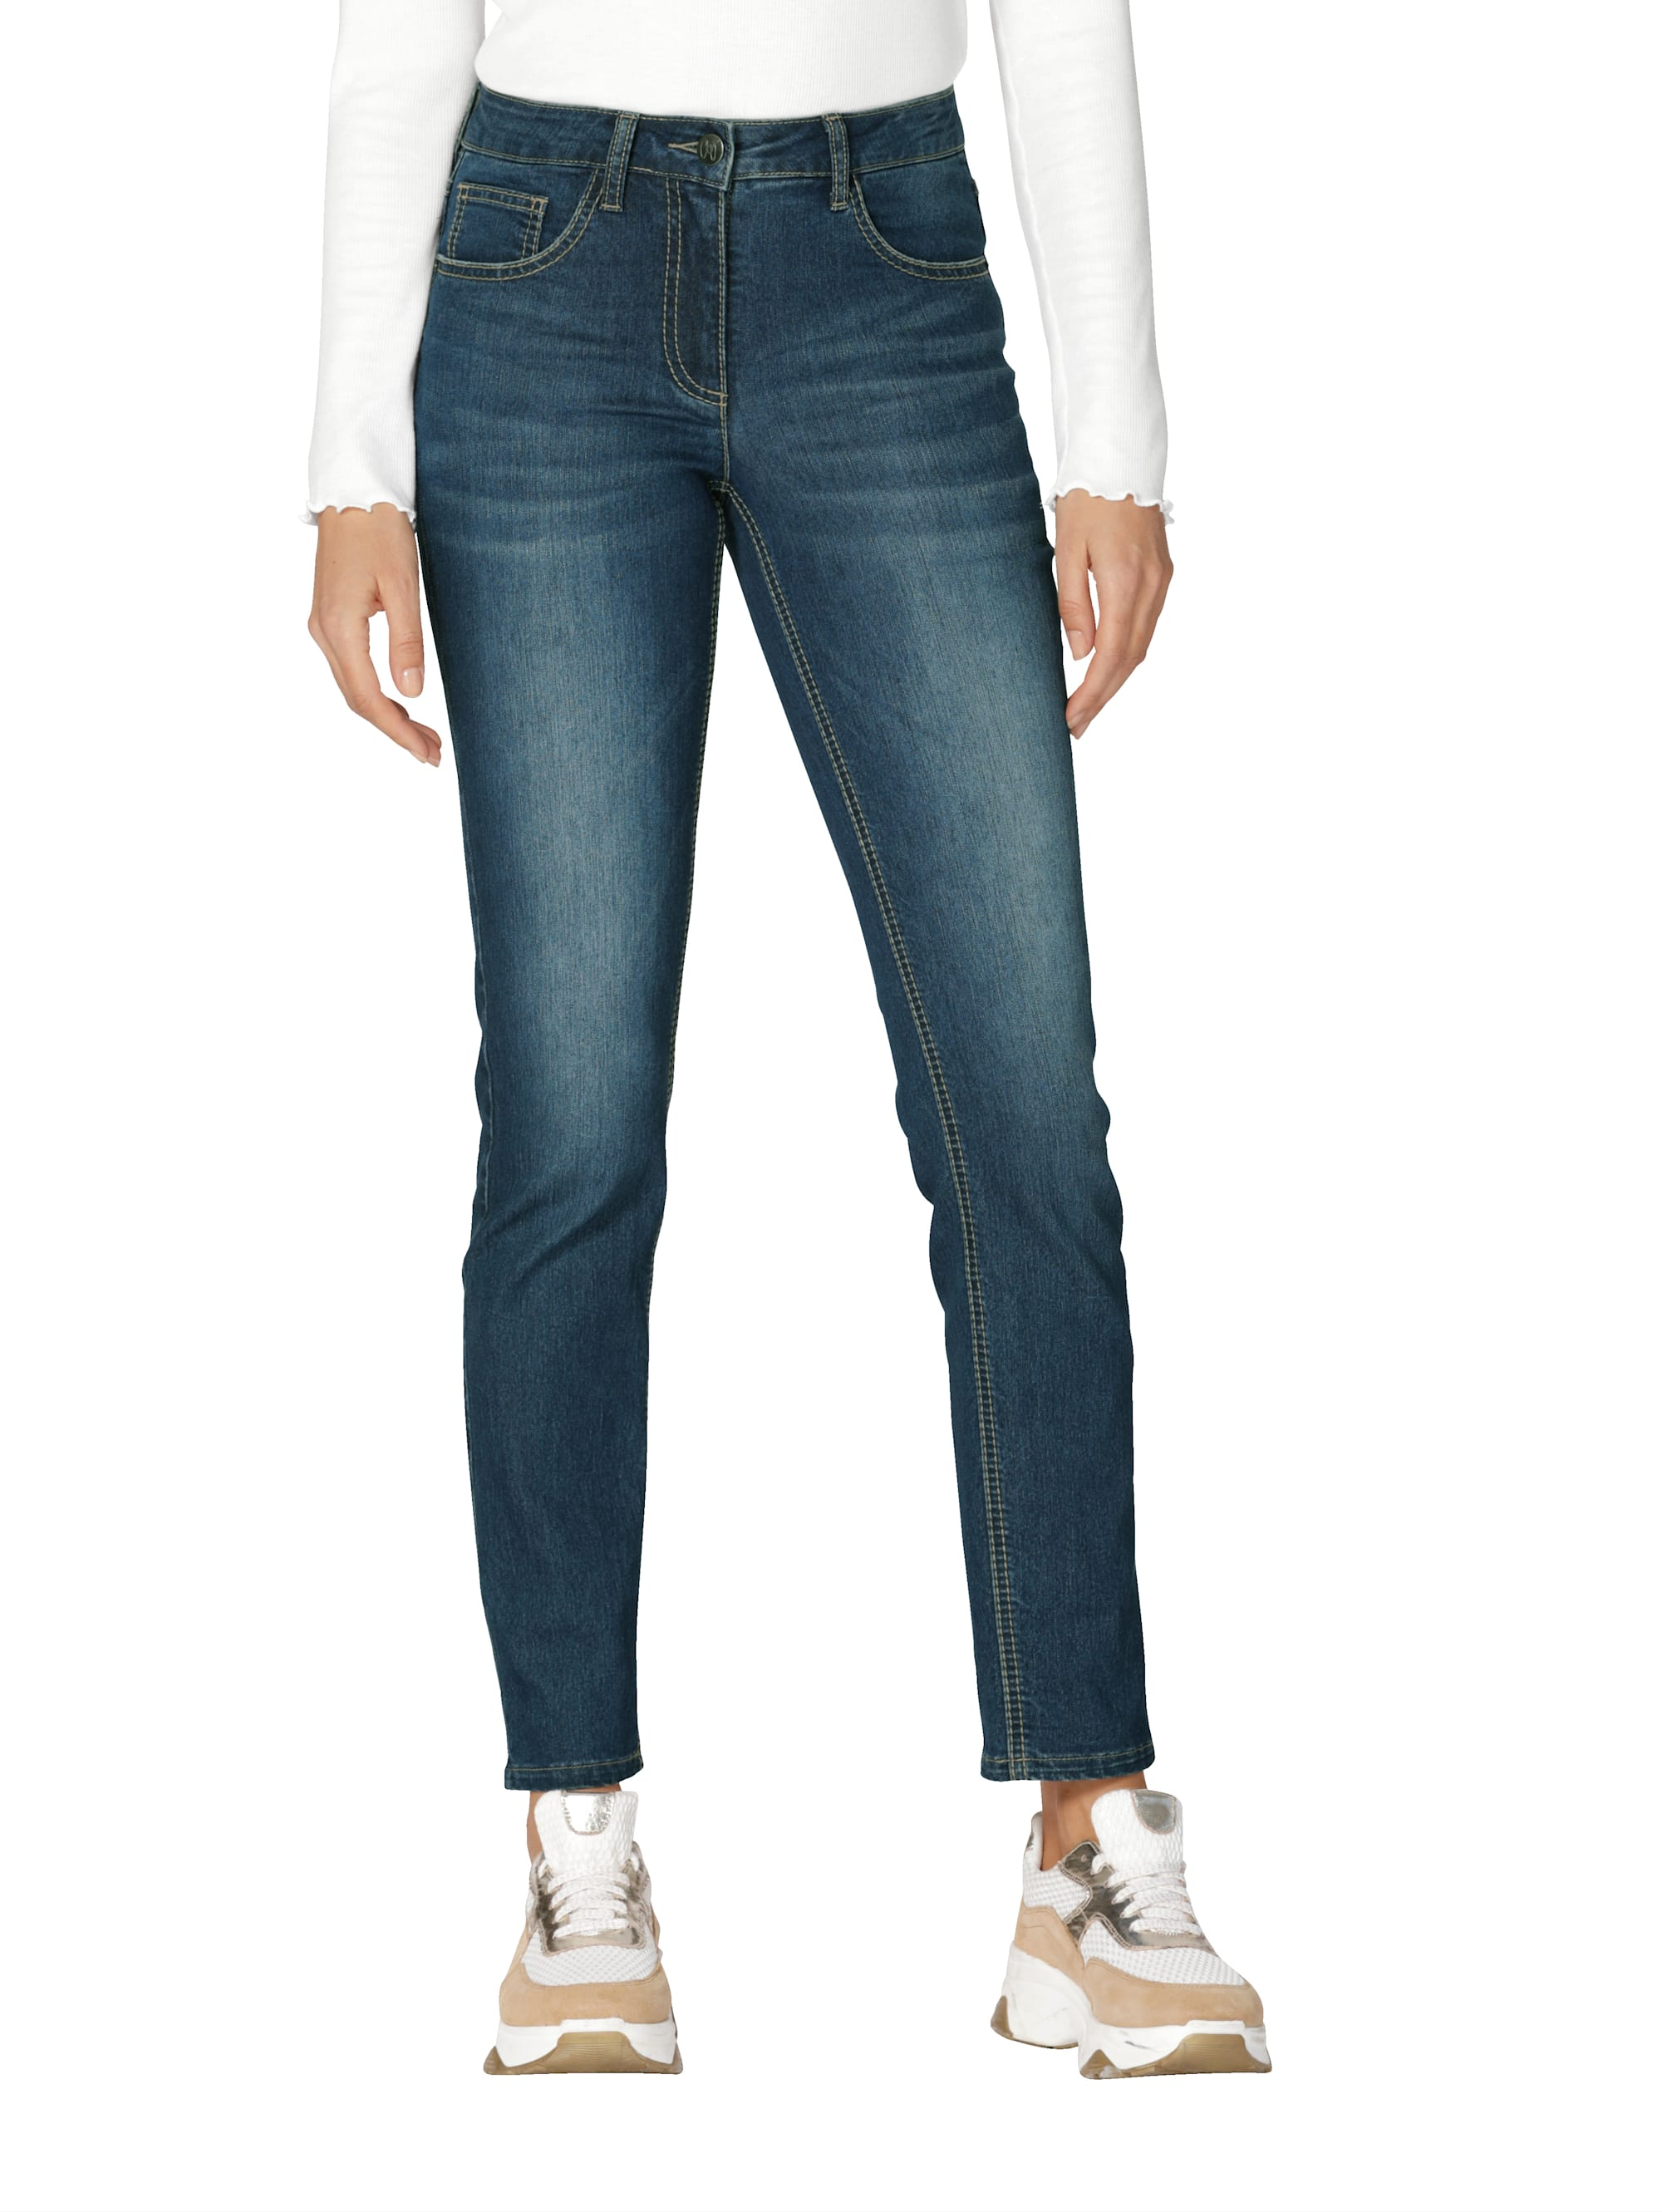 AMY VERMONT Jeans in 5-Pocket-Form srB0y YCoHS